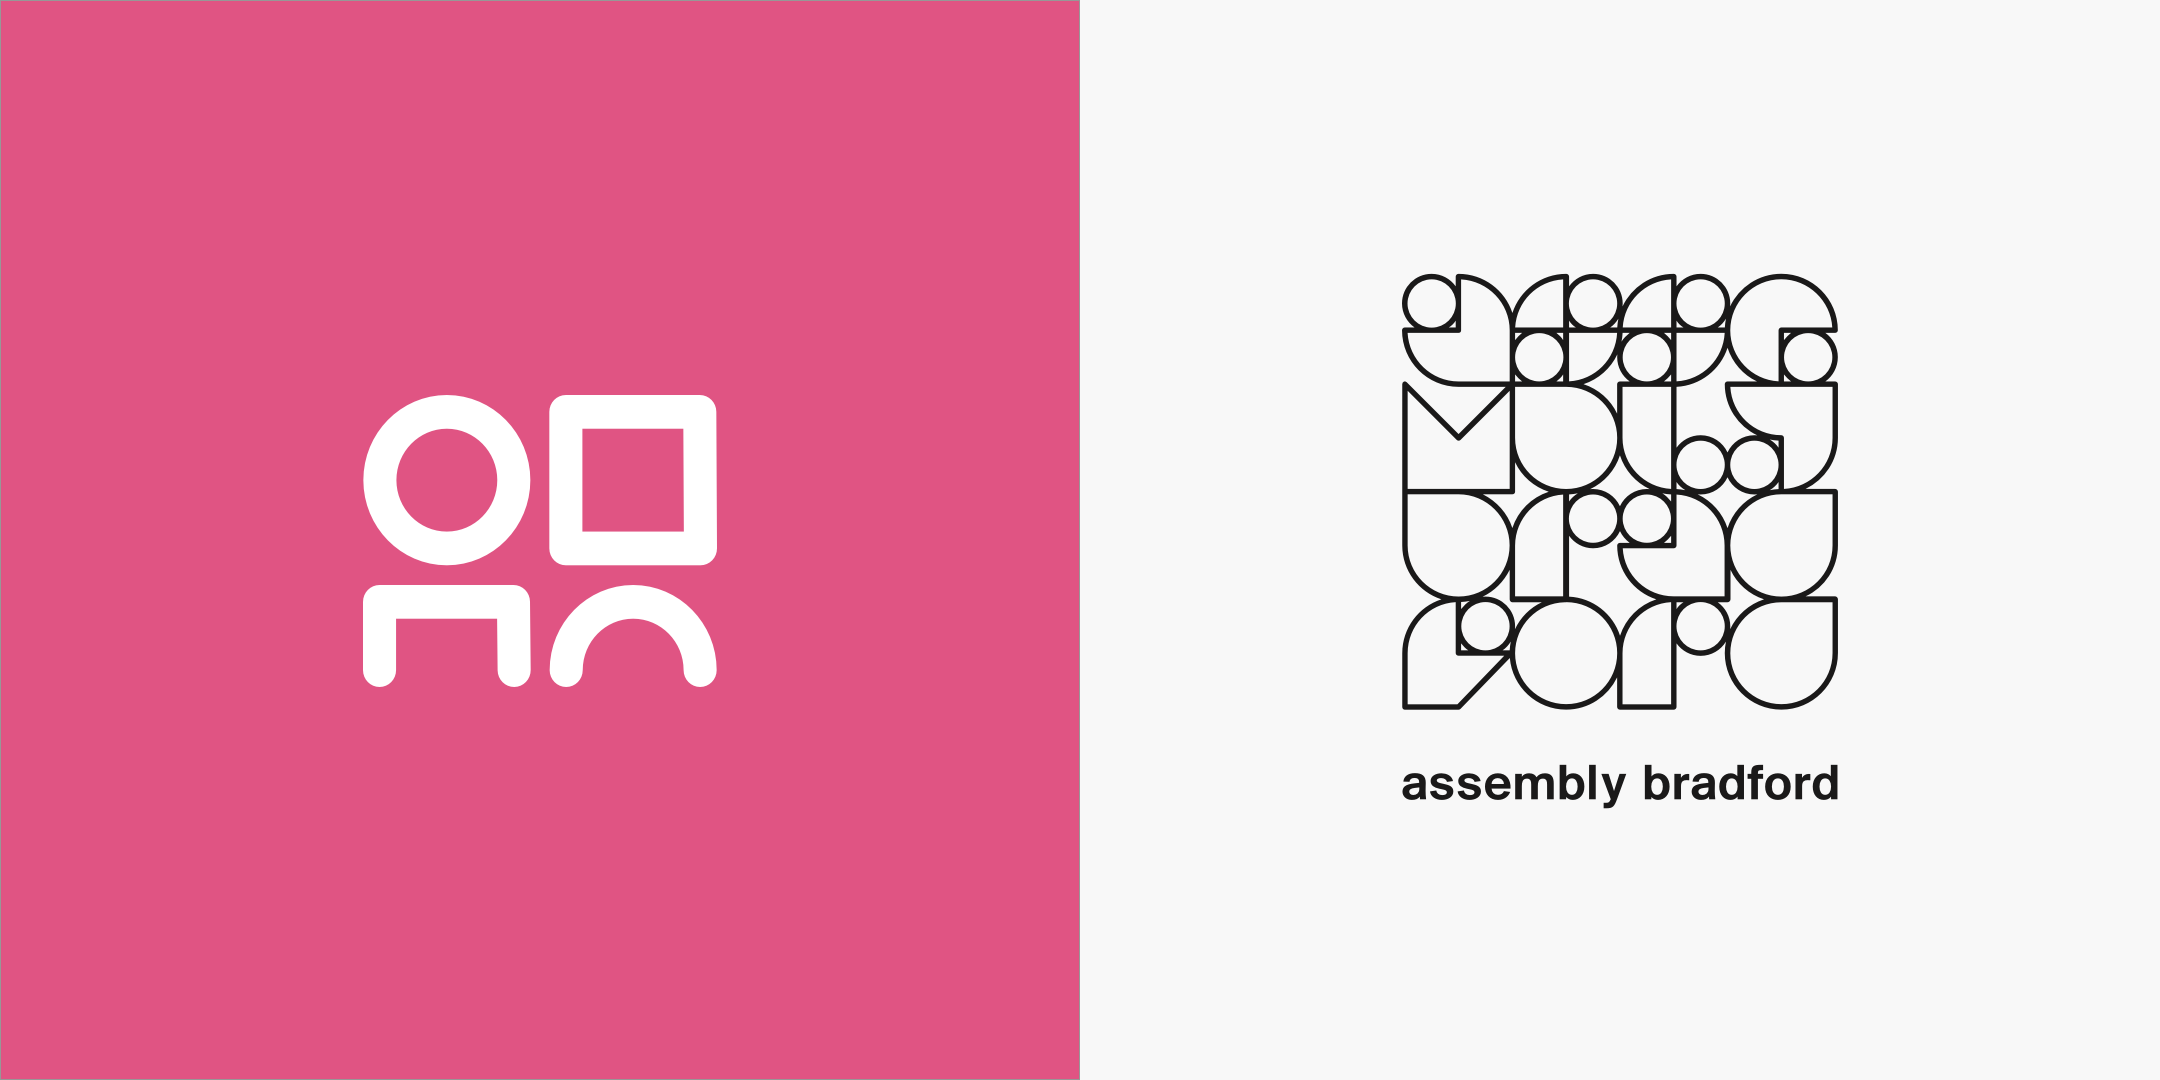 We The People Design and Assembly Bradford